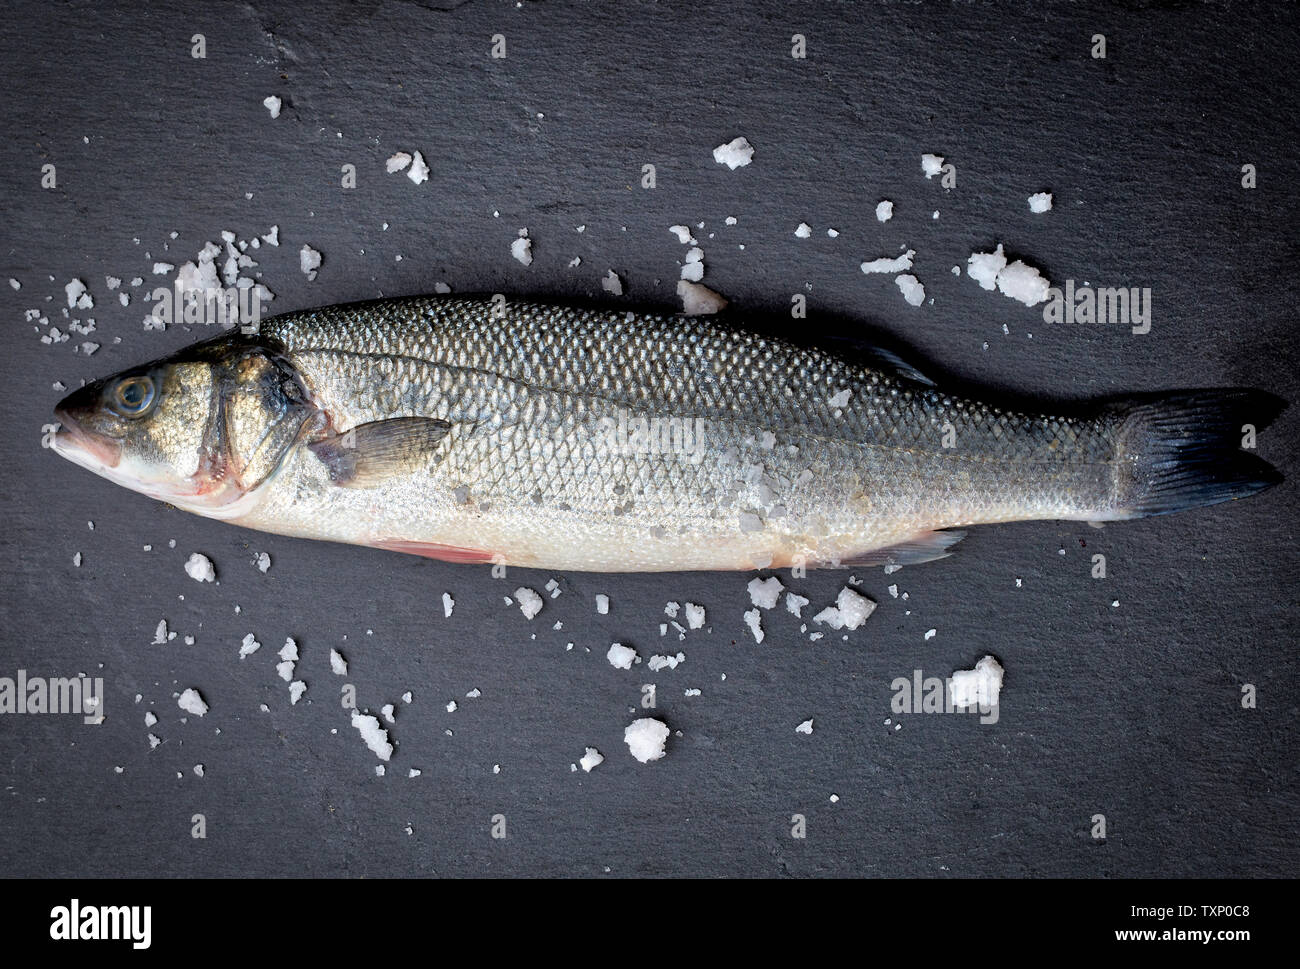 fresh whole sea bass fish with salt on black background, top view - Stock Image